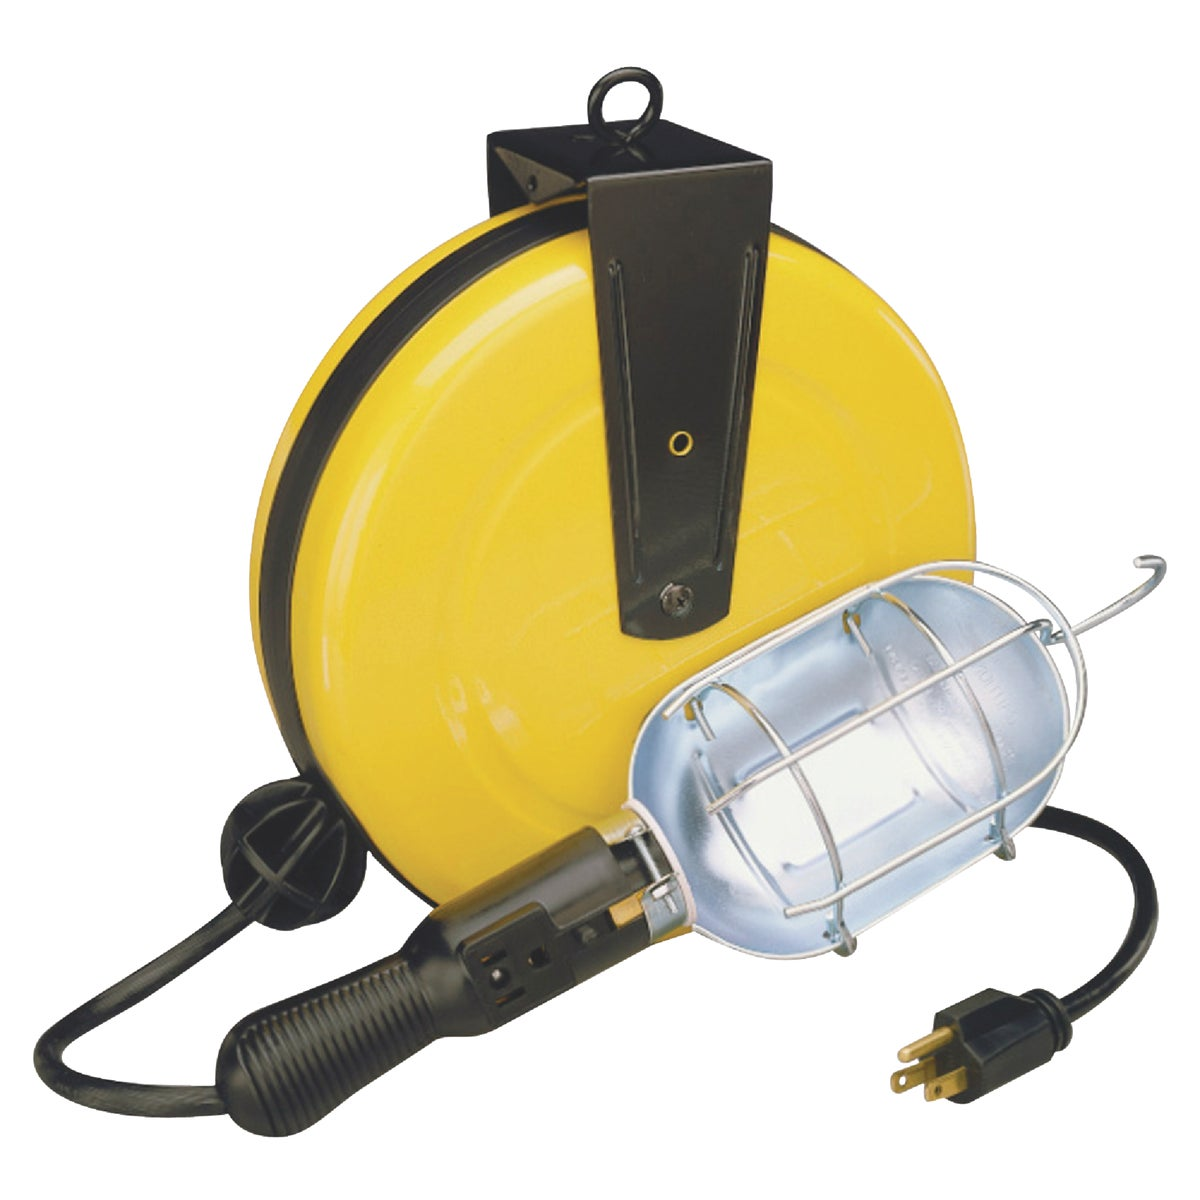 30' REEL/WORKLIGHT - 5000A30G by Alert Stamping & Mfg